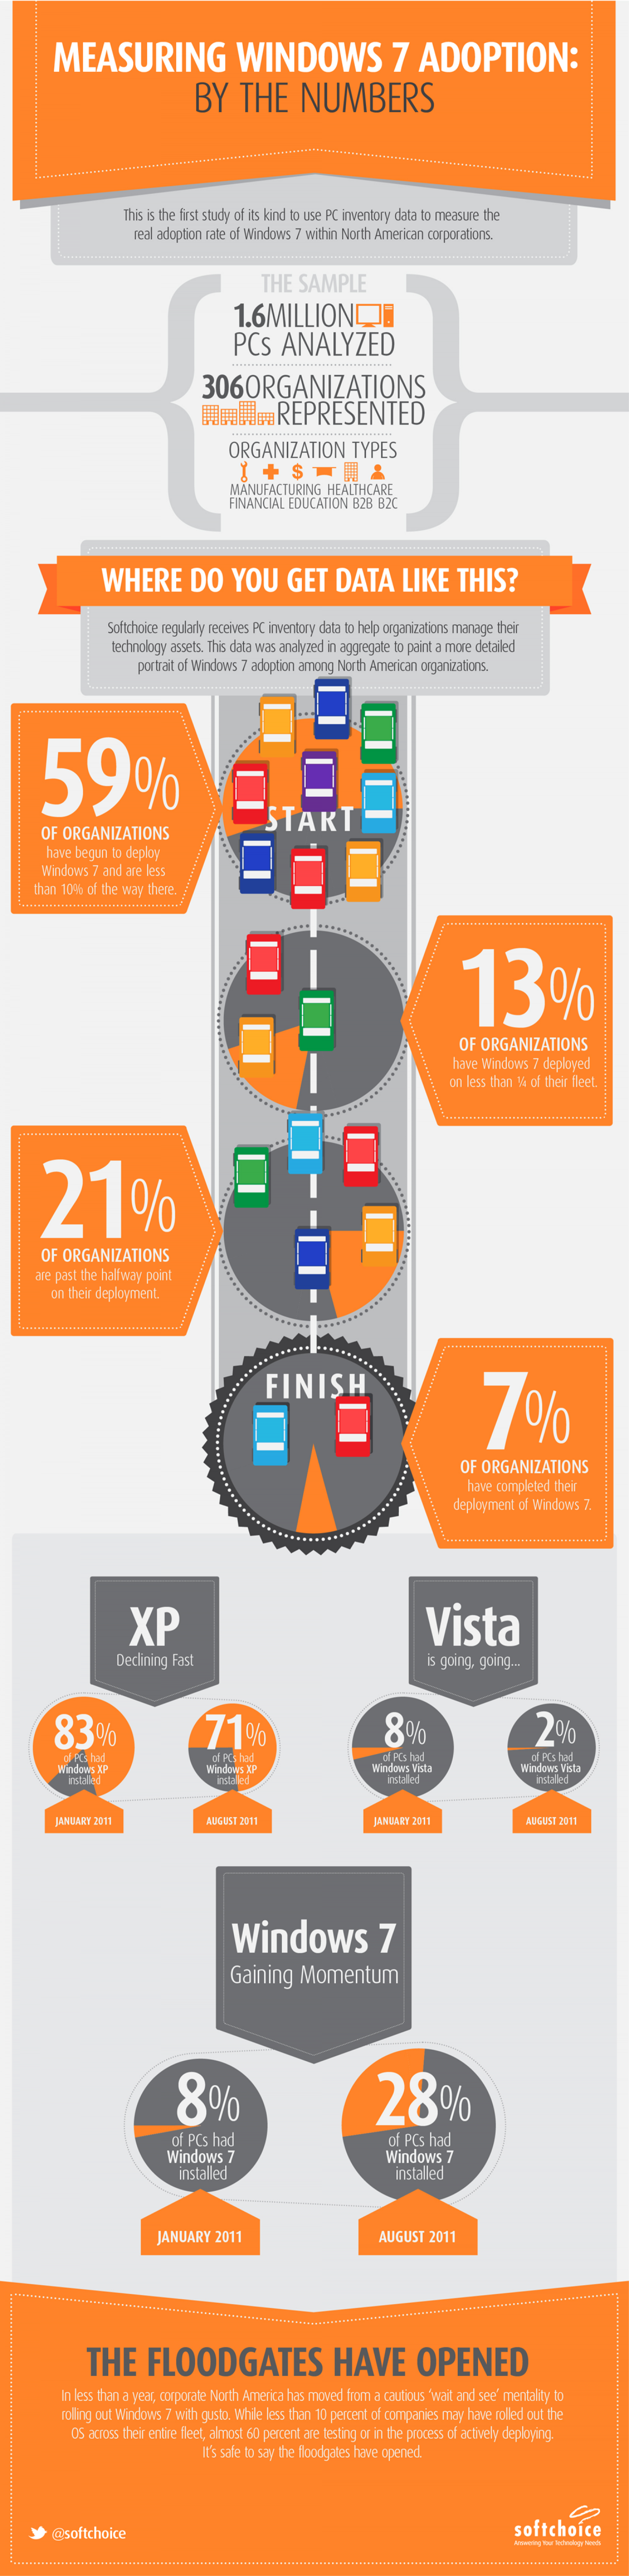 Measuring Windows 7 Adoption: By The Numbers Infographic